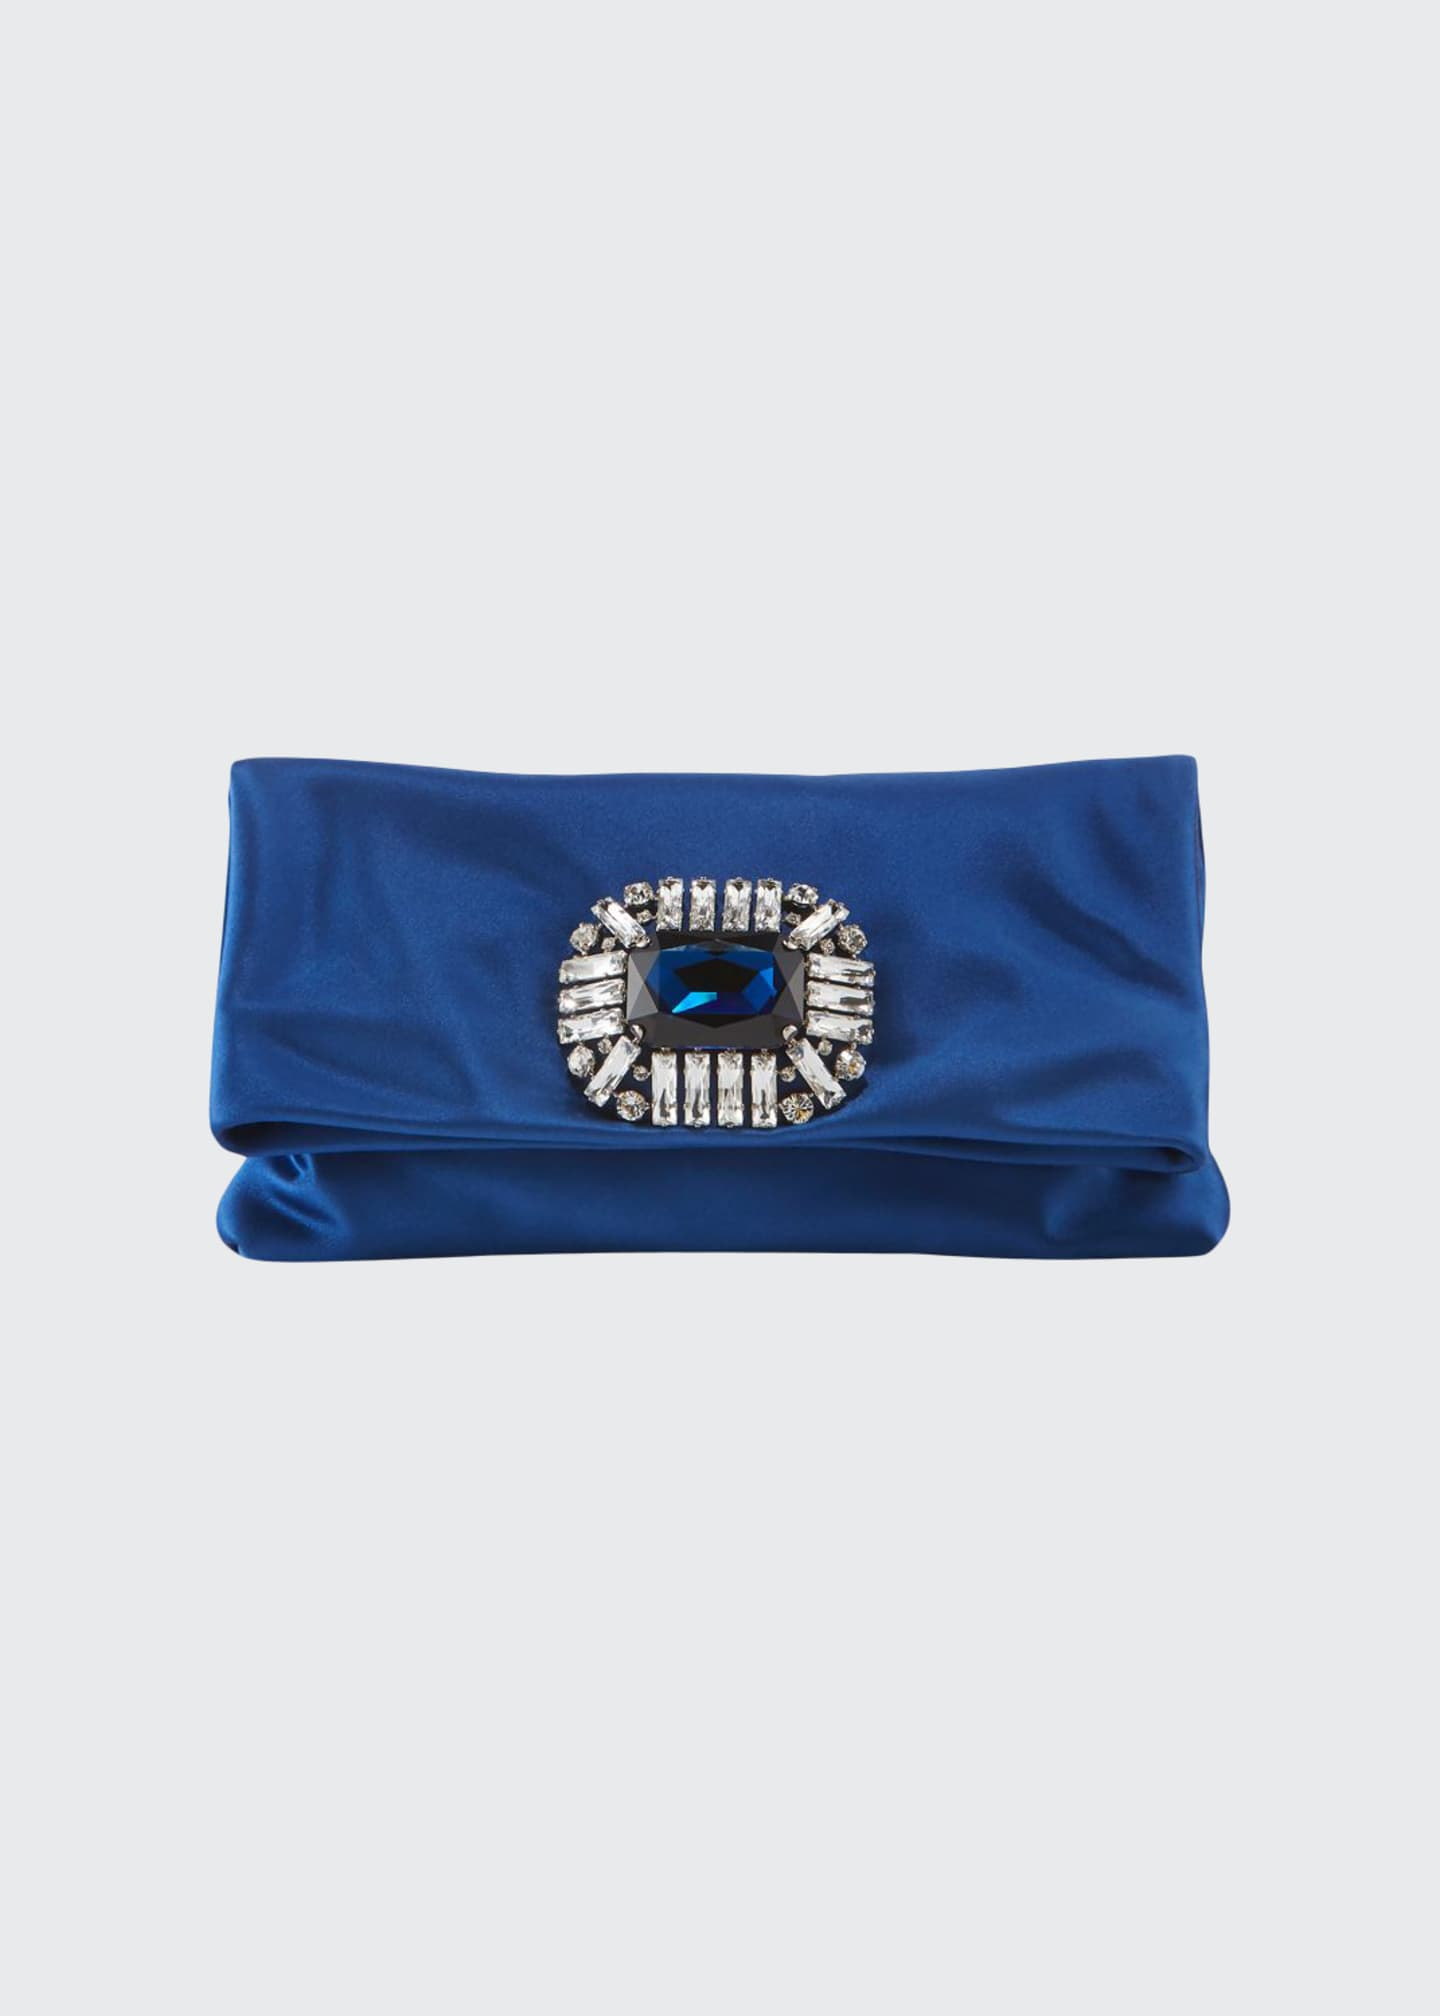 Jimmy Choo Titania Jeweled Satin Clutch Bag, Blue